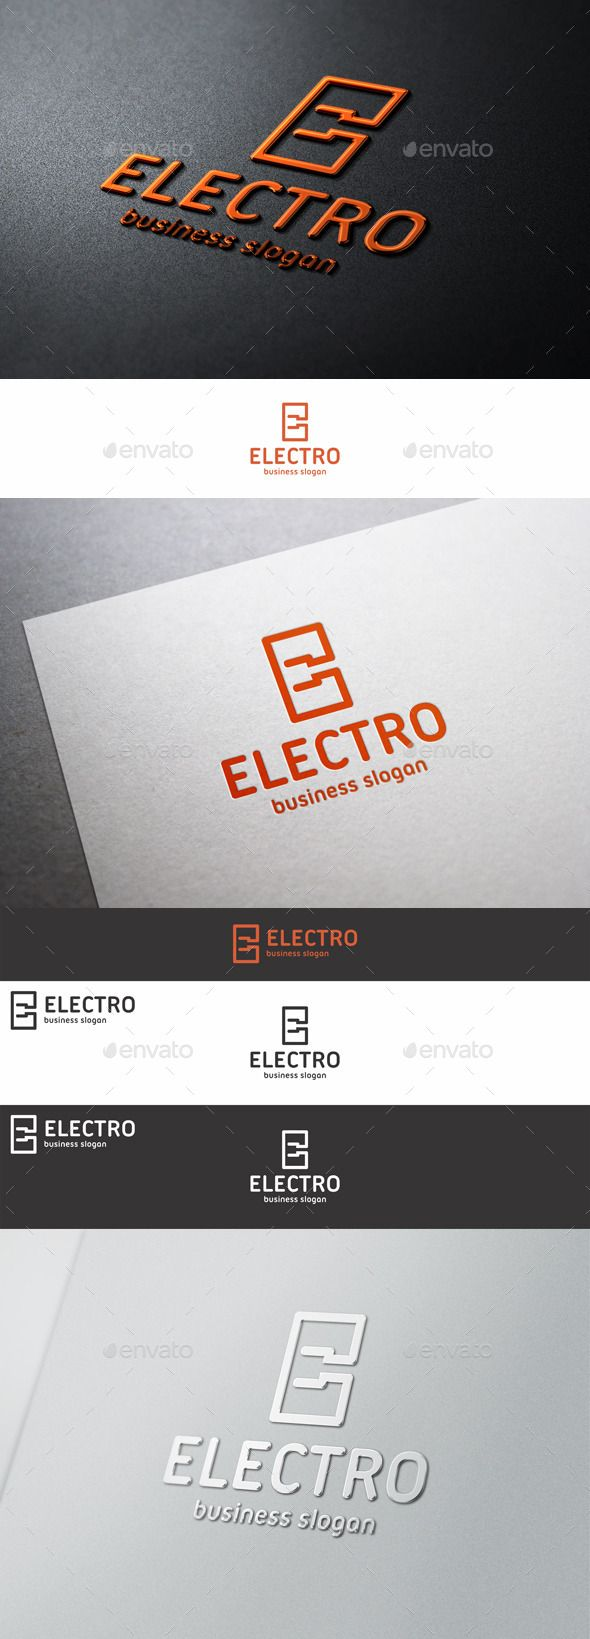 Electric Plug Logo E Letter – An excellent logo highly suitable for electrical and technology businesses